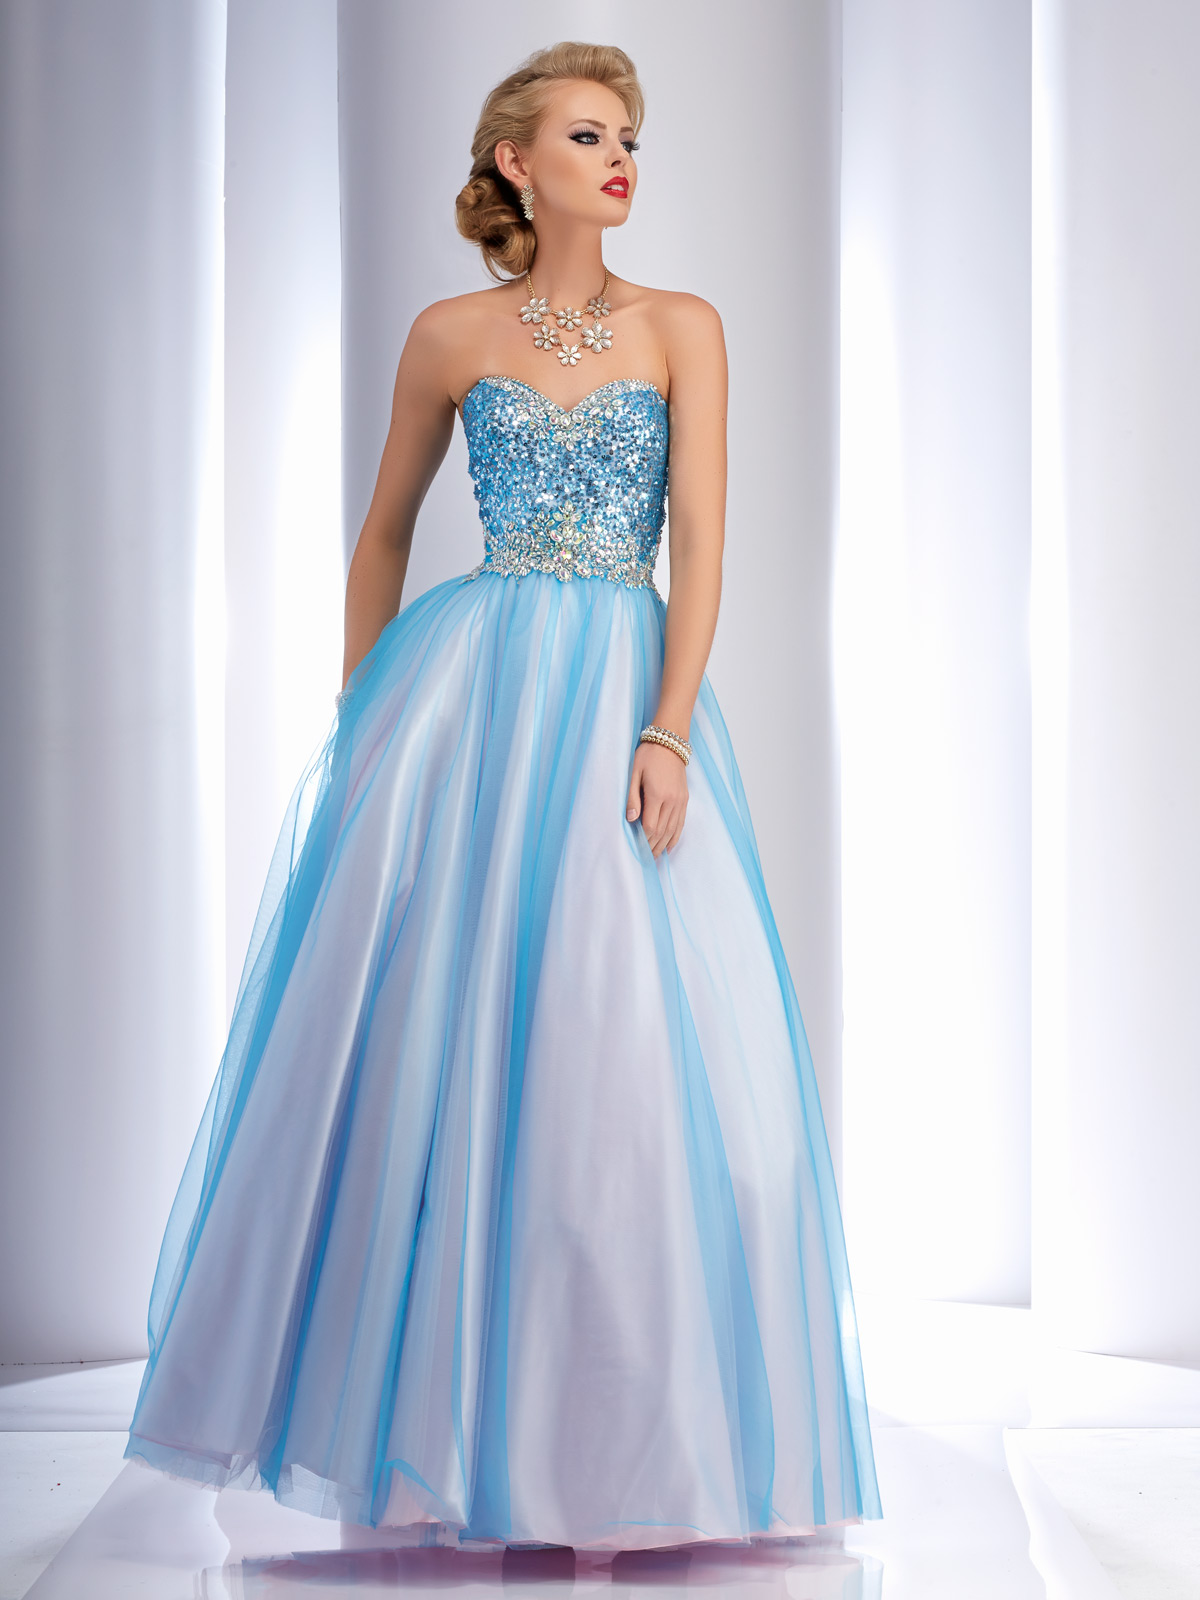 Prom dresses and gowns 2015 | Promgirl.net